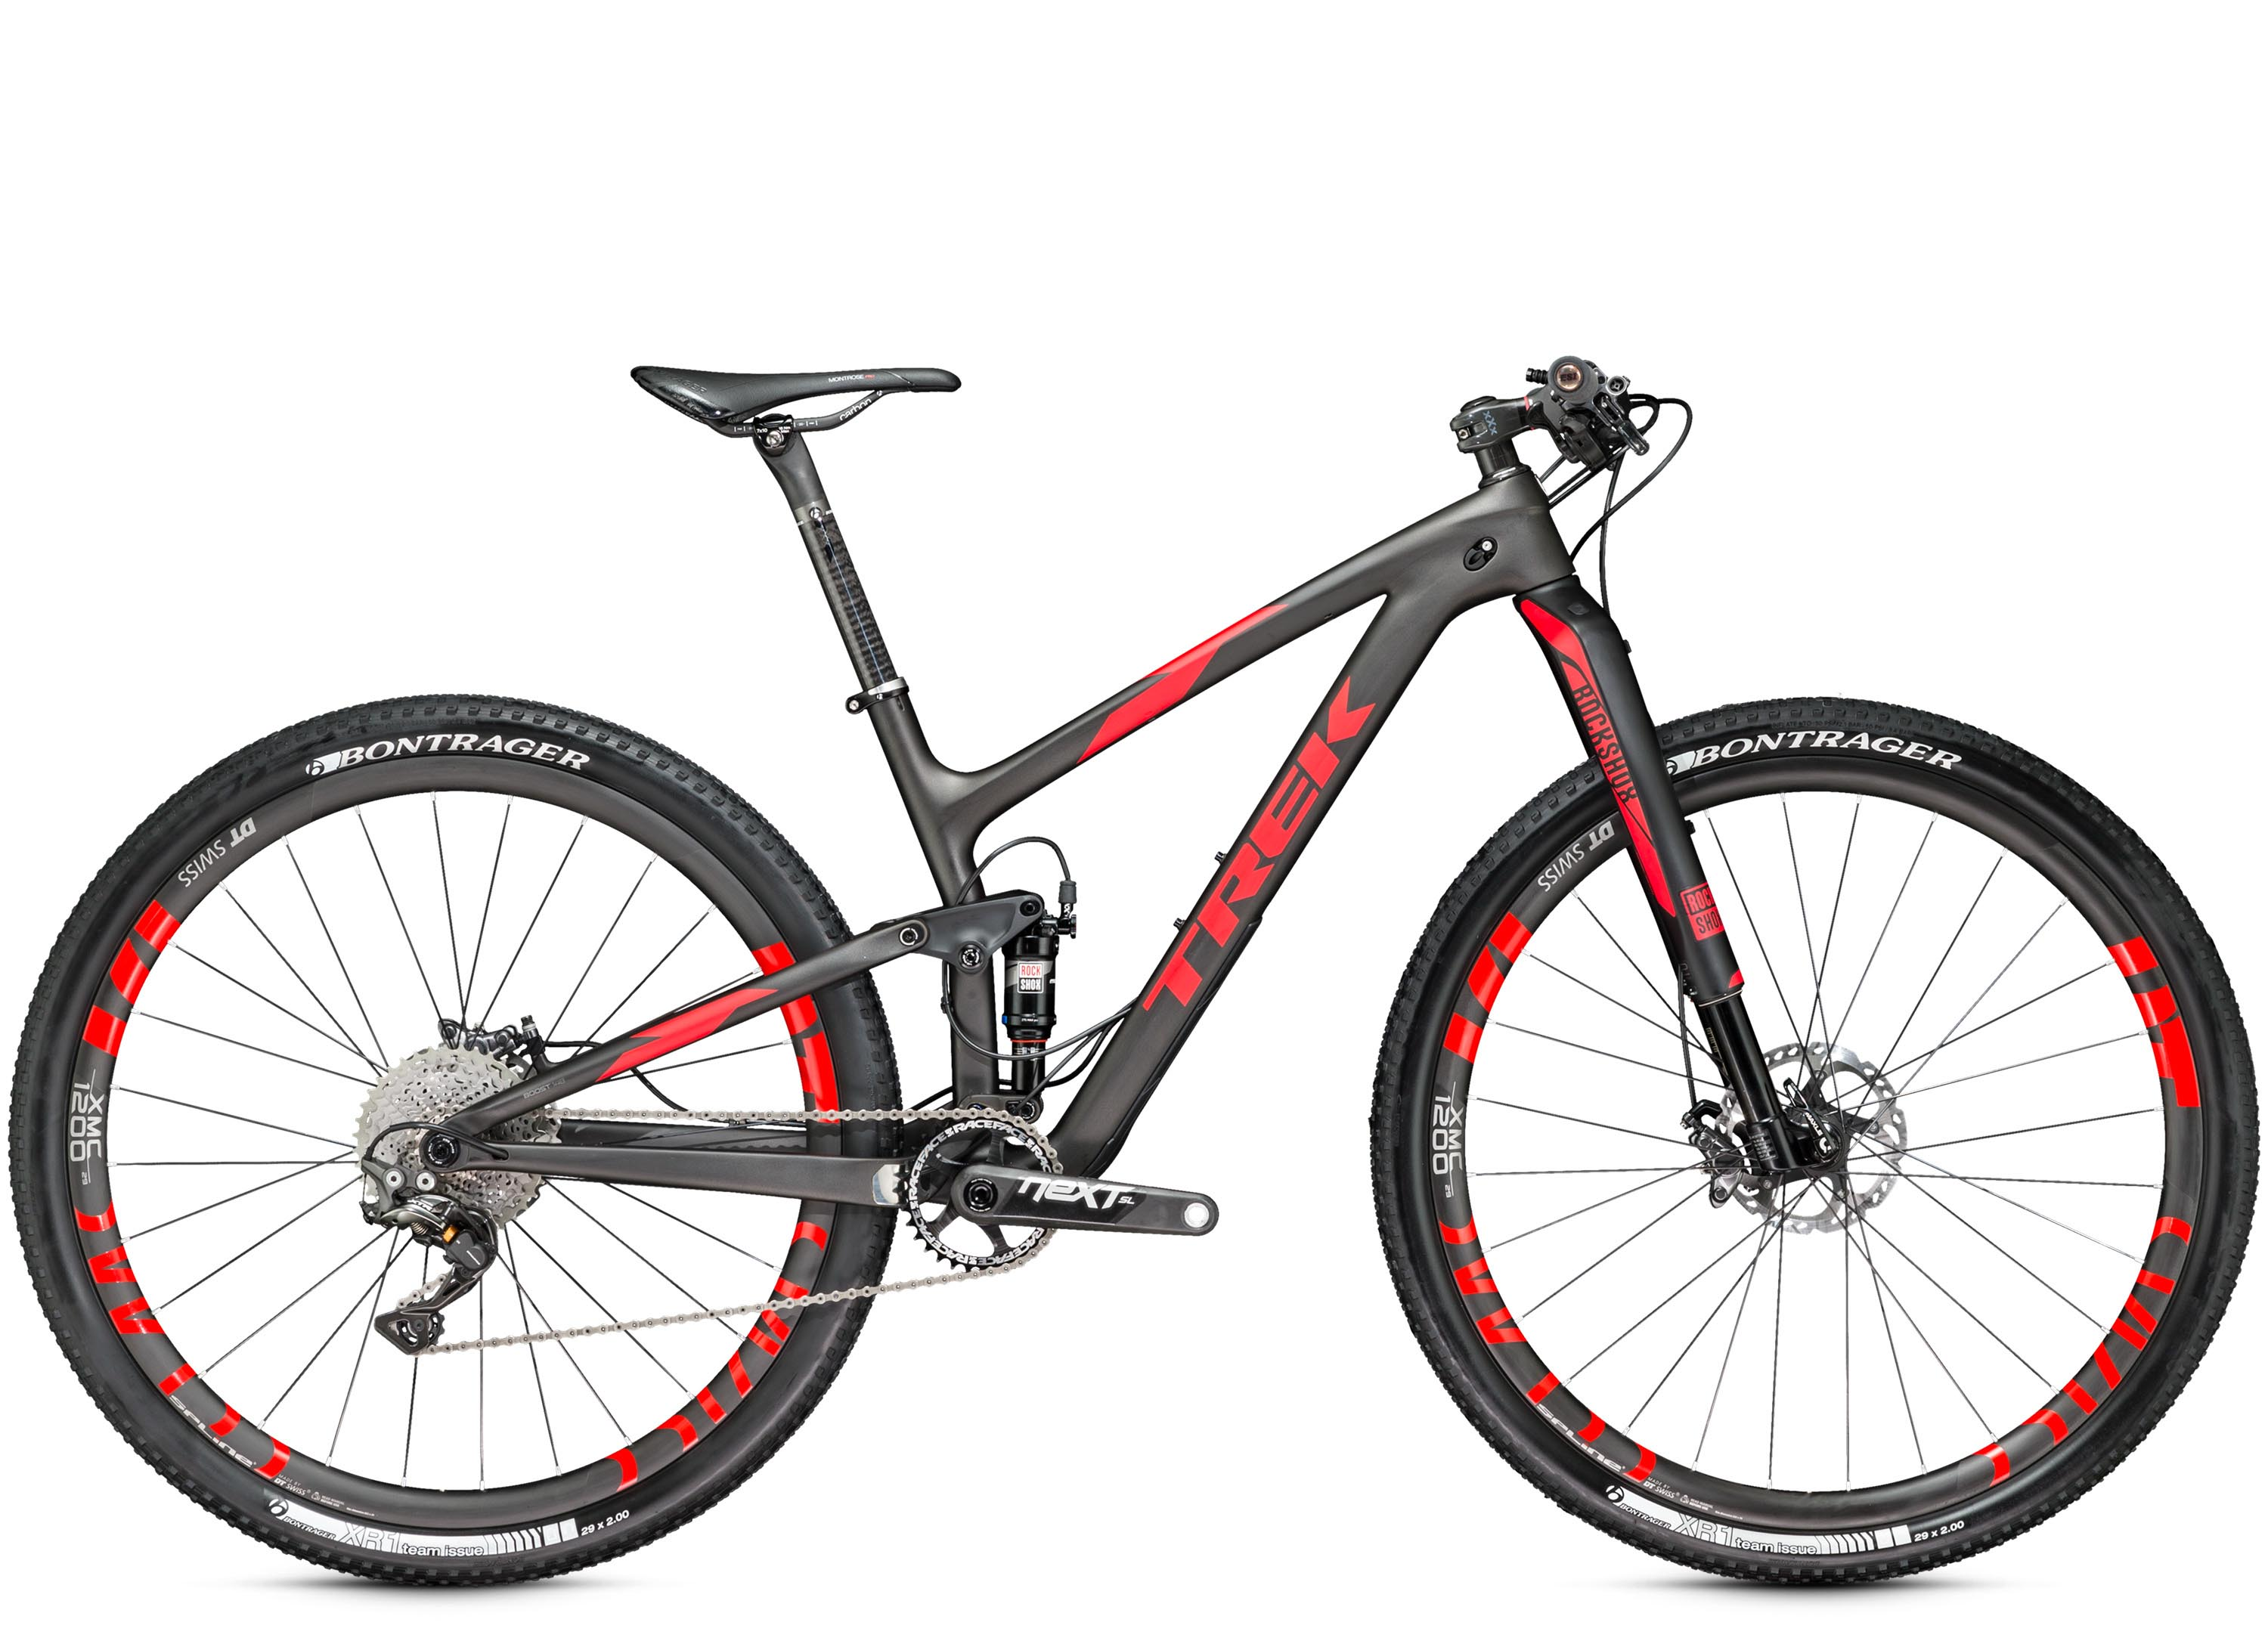 Trek Smooths Out Xc Racing With New Isospeed Procaliber Sl And Revamped Top Fuel